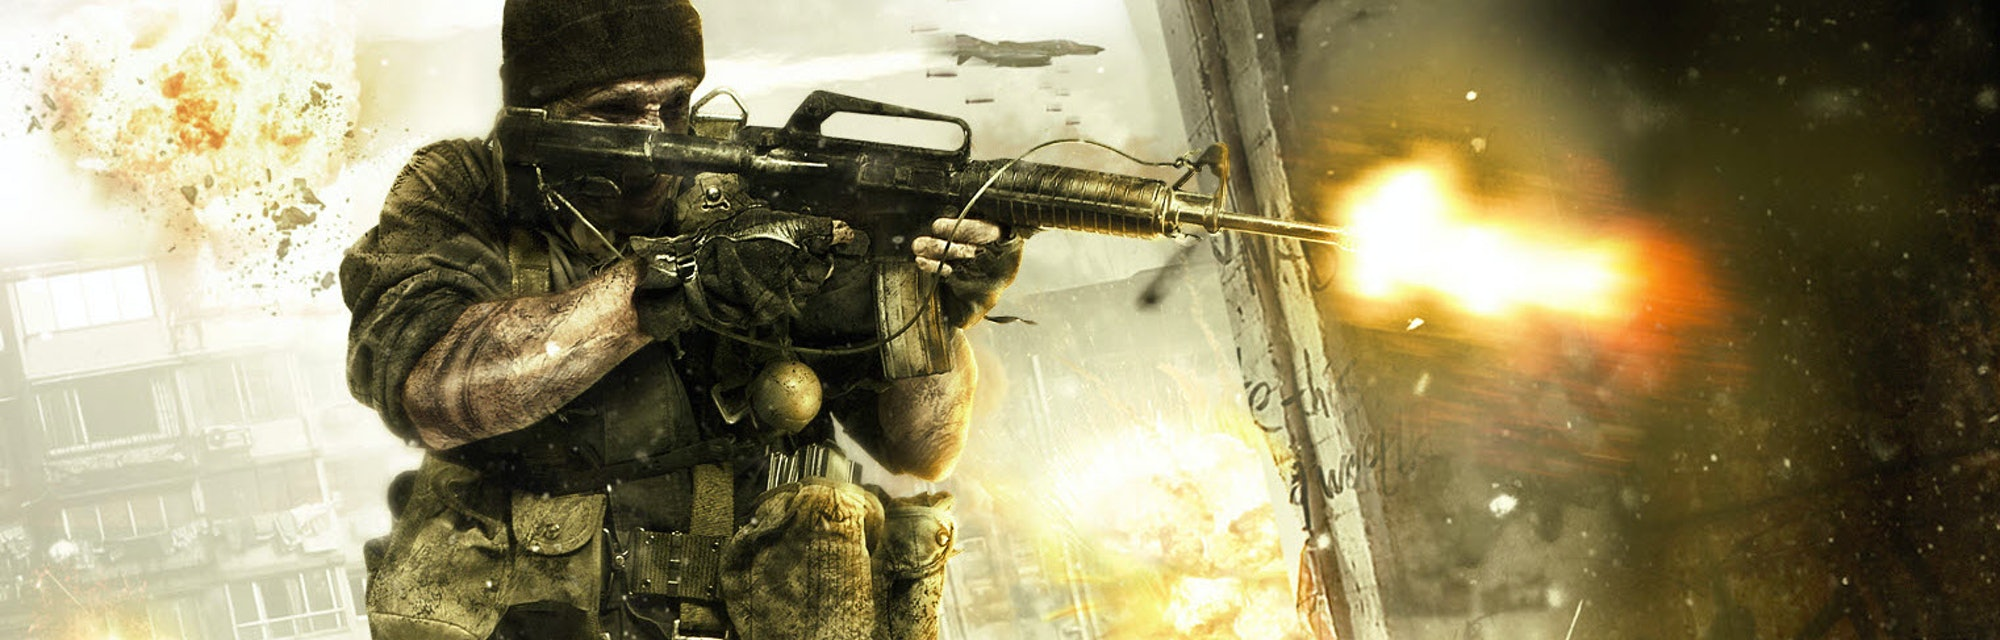 Call Of Duty Black Ops Cold War Leaks Seem To Confirm Cod 2020